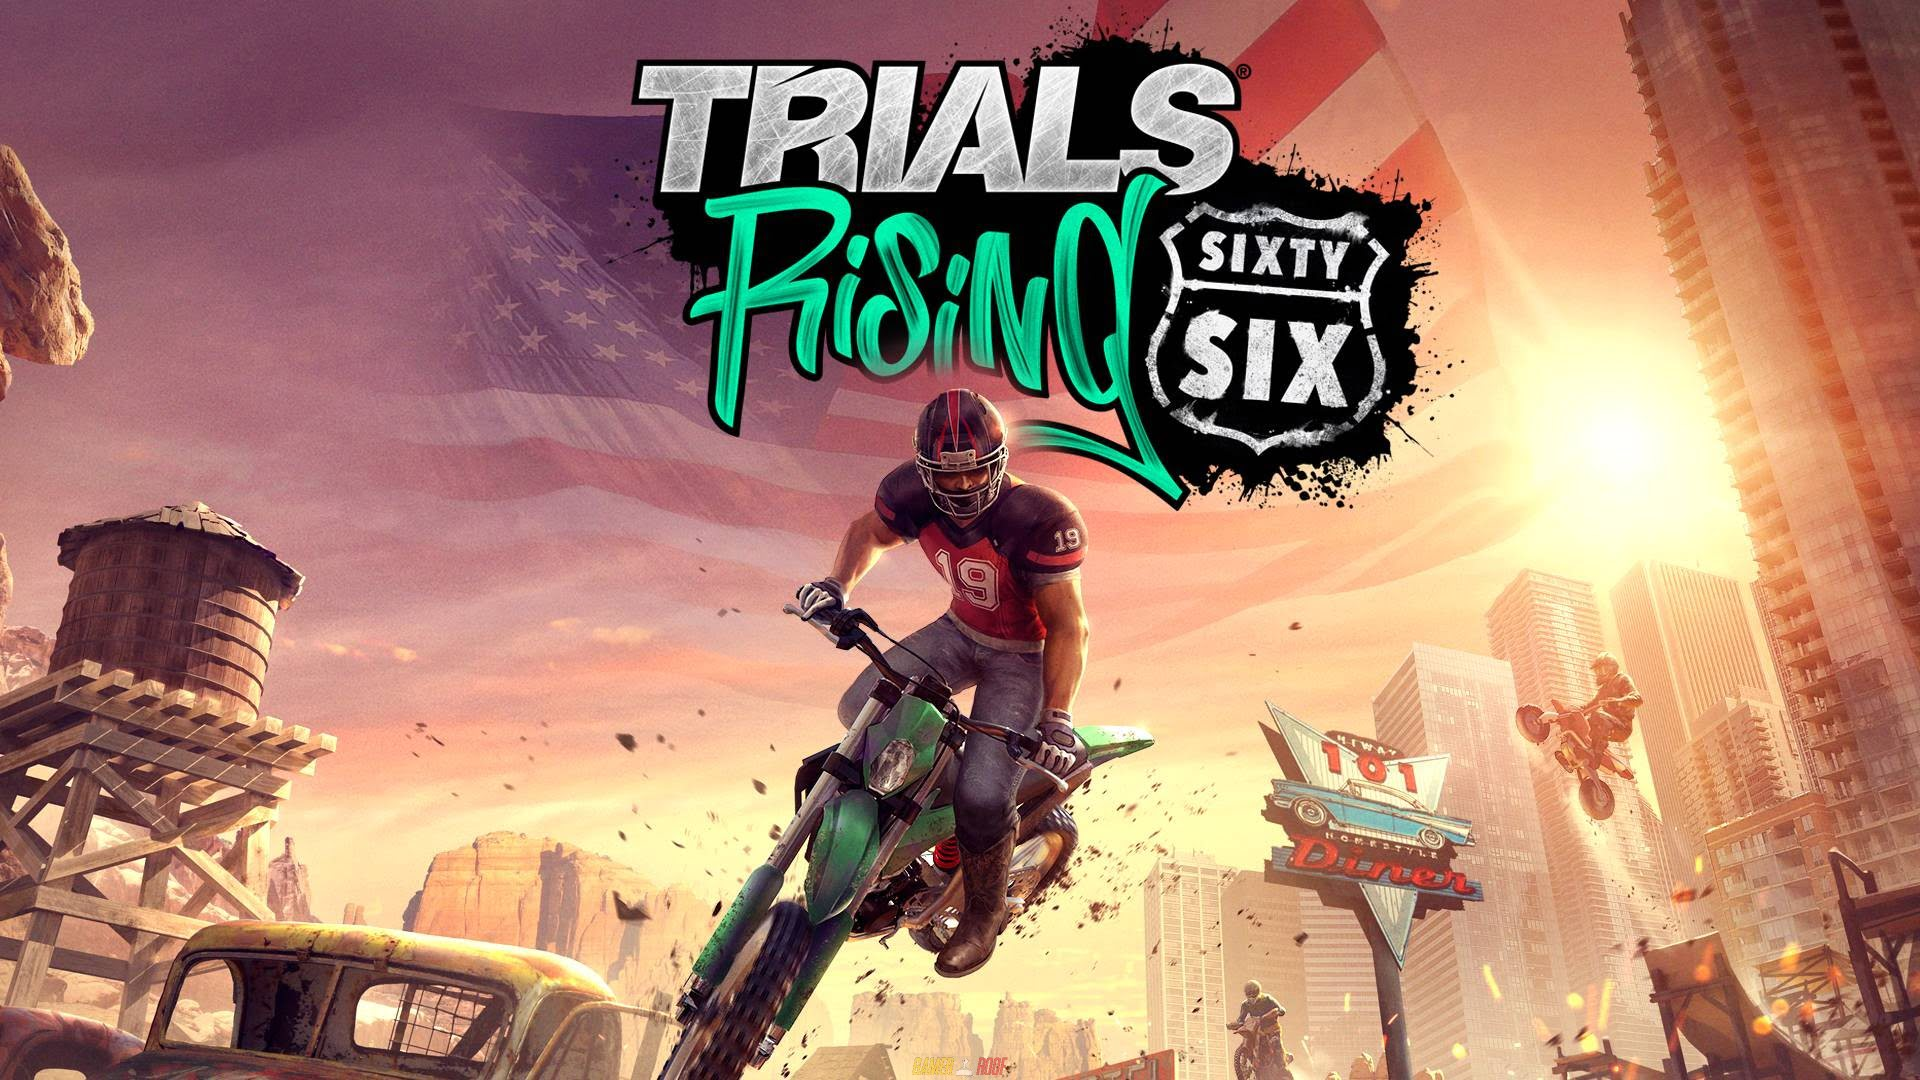 Trials Rising Sixty Six PC Version Full Game Free Download